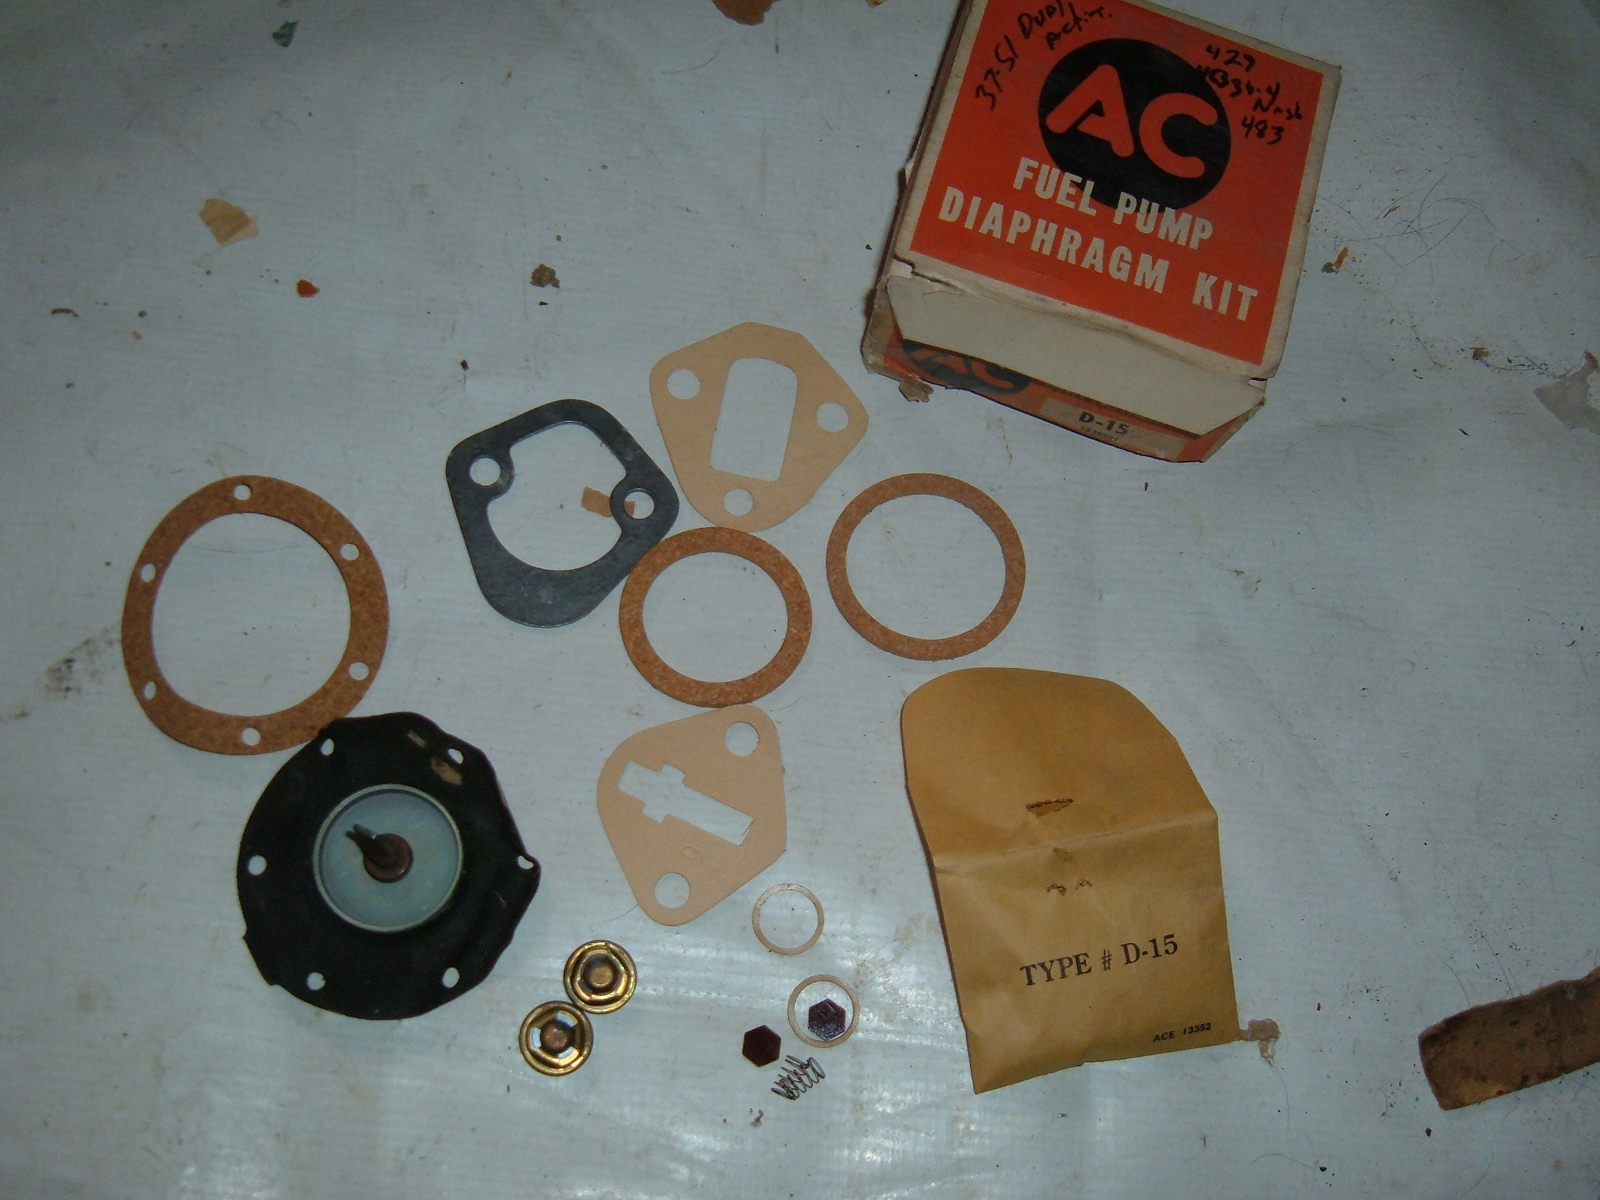 1937 39 41 46 48 49 51 chevrolet fuel pump ac rebuild kit nos 1538507 (z 1538507)